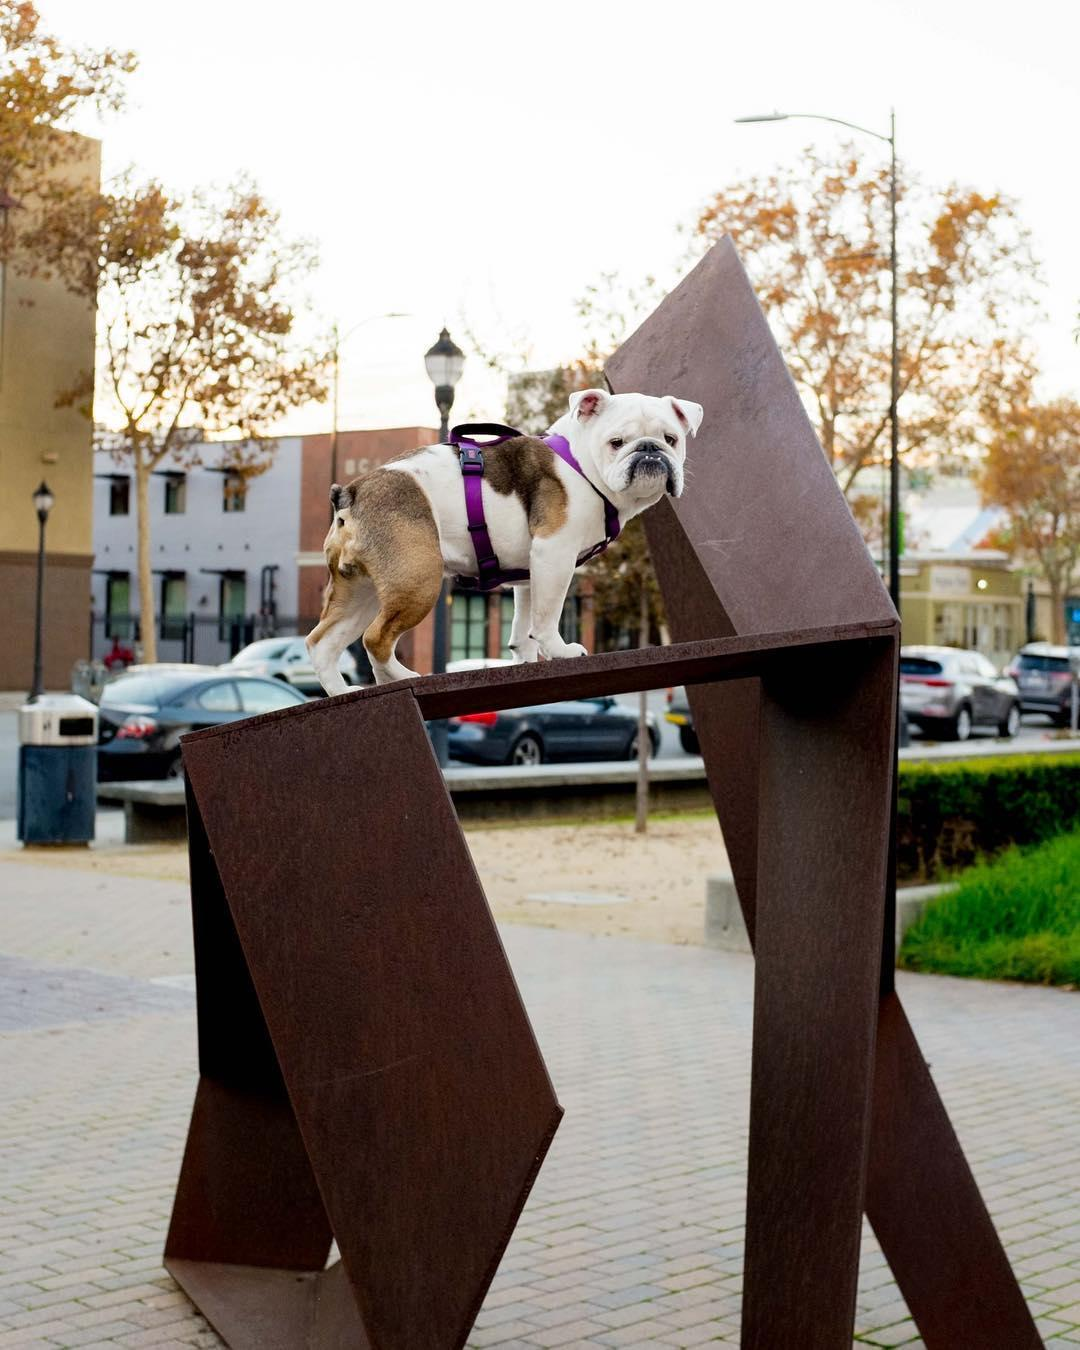 Explore downtown San Jose with your dog with a self-guided art walk from Public Art San Jose.